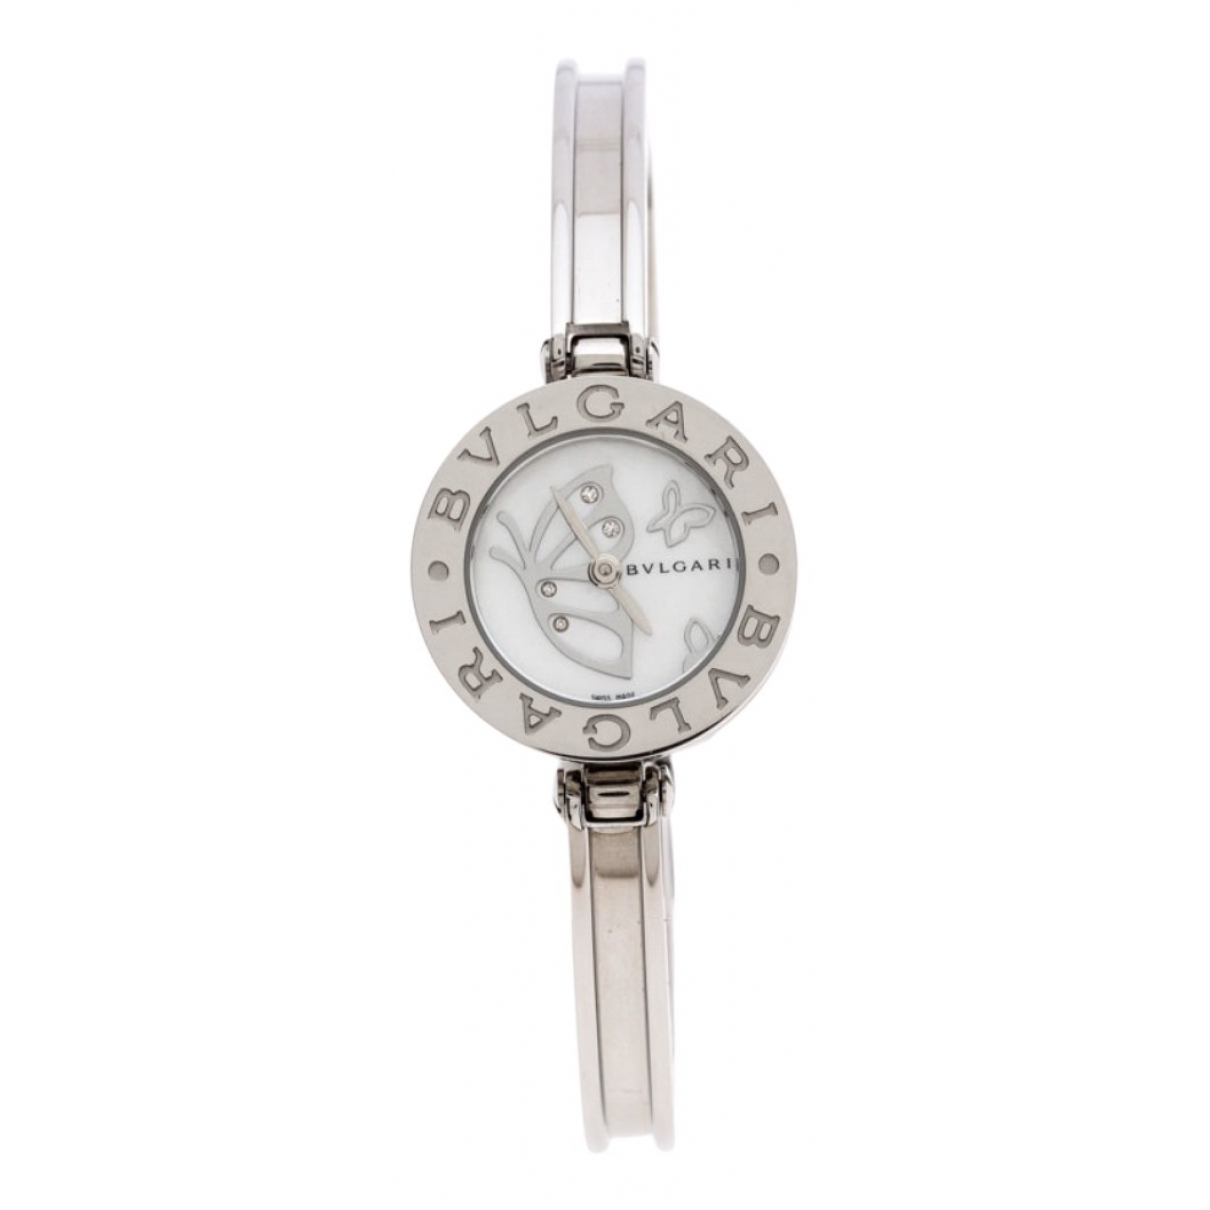 Bvlgari \N White Steel watch for Women \N